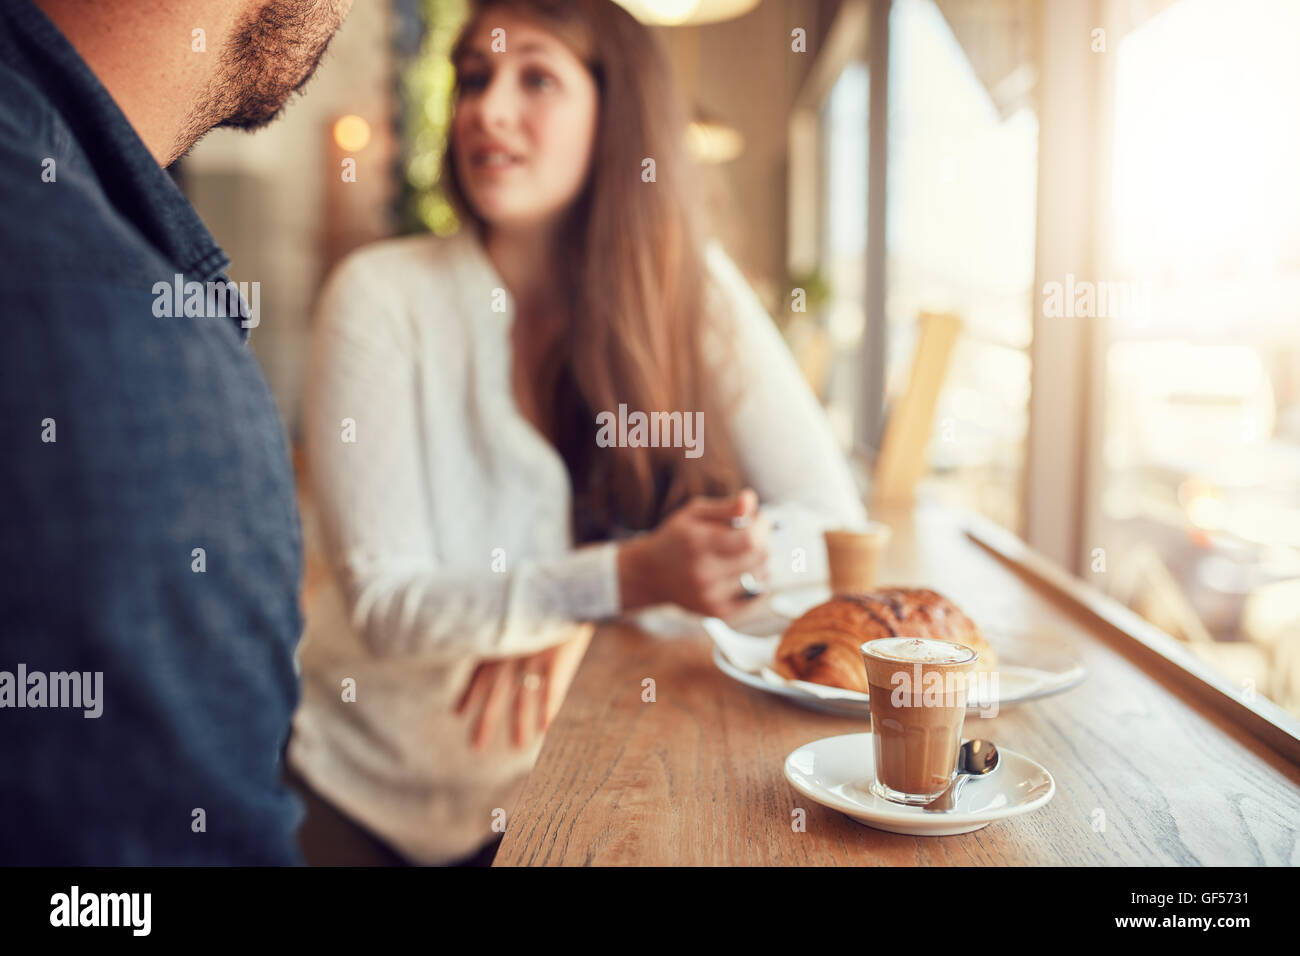 Cup of coffee and food on table with couple talking in background at cafe. - Stock Image